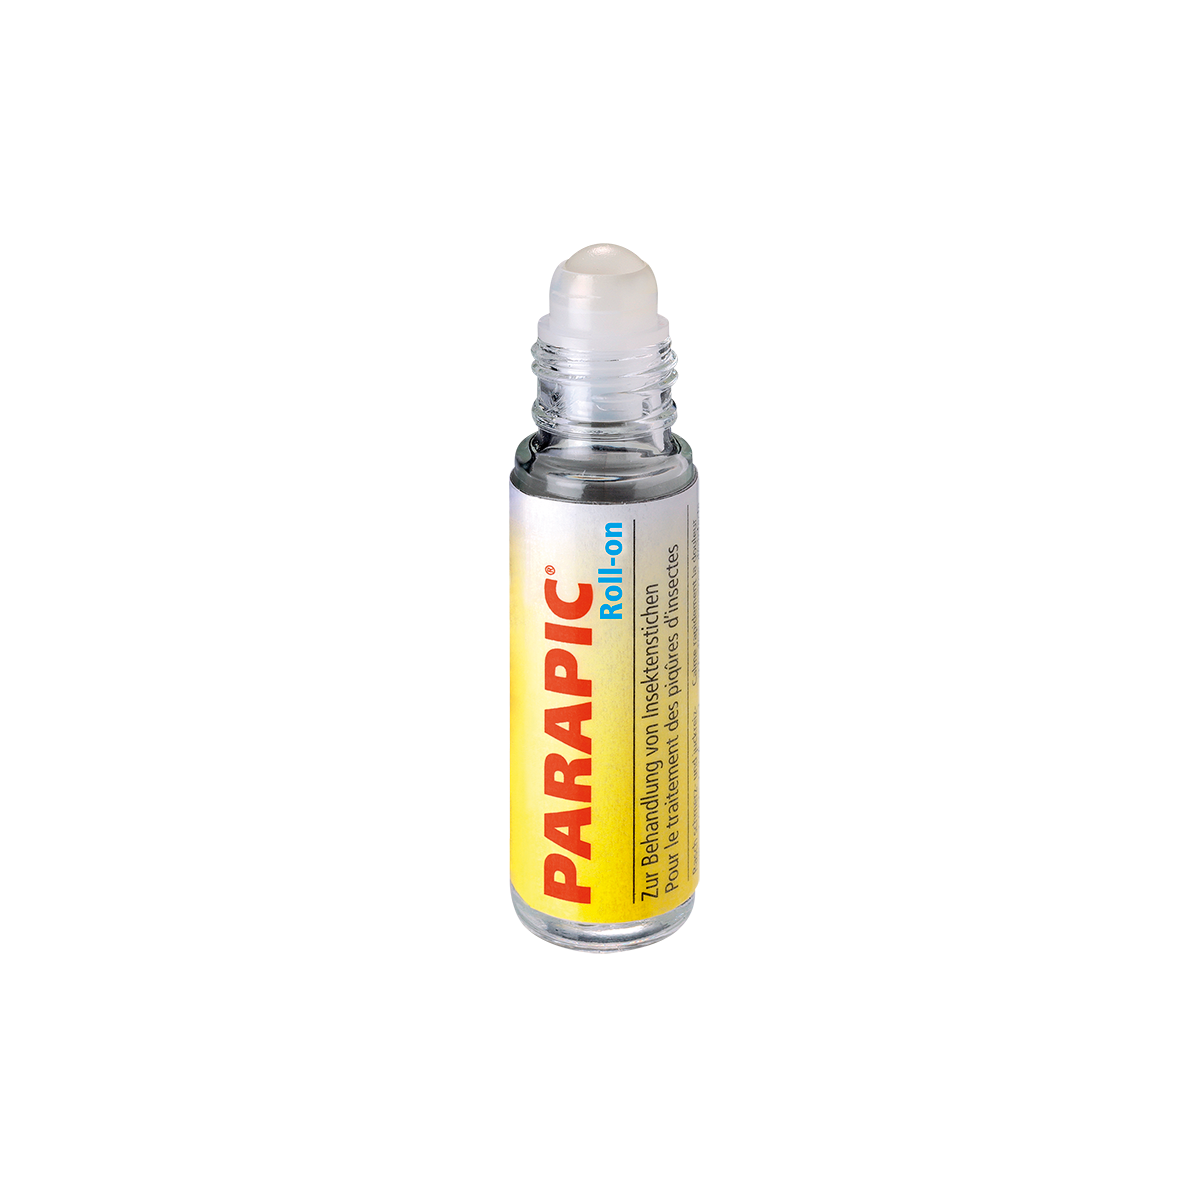 Parapic Roll-on 7.5 ml